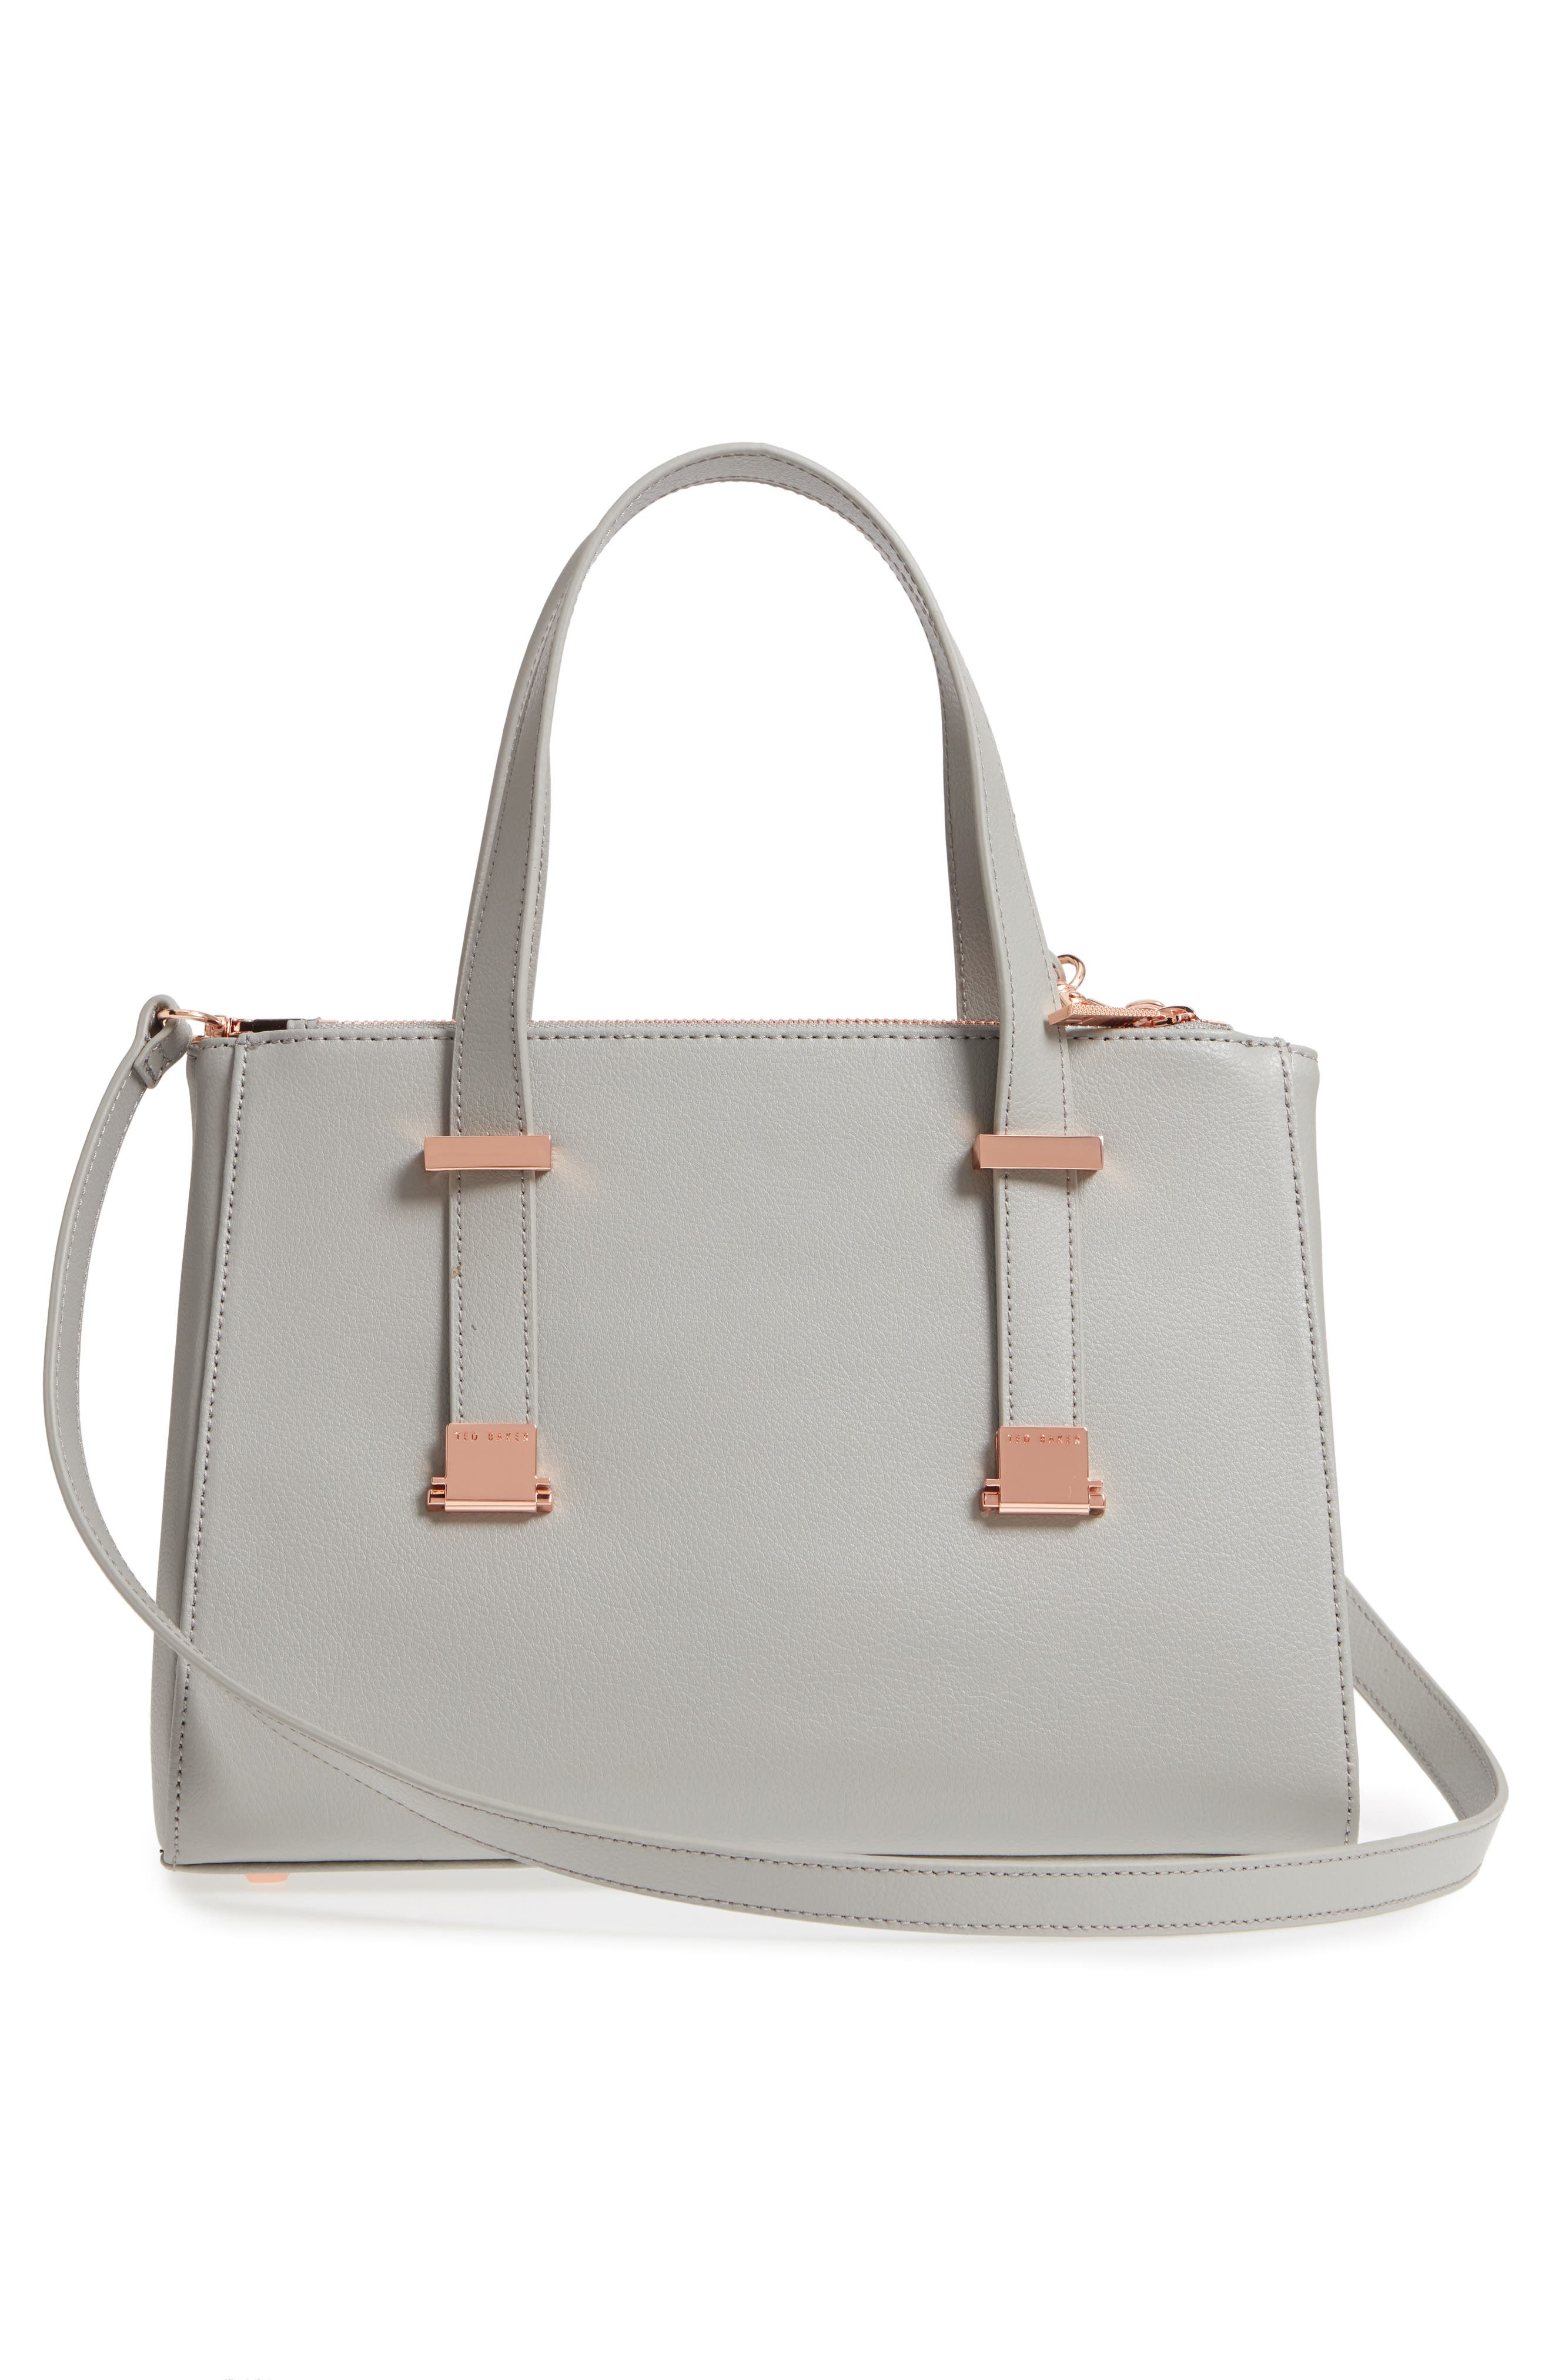 Audreyy Small Adjustable Handle Leather Shopper,                             Alternate thumbnail 3, color,                             Mid Grey